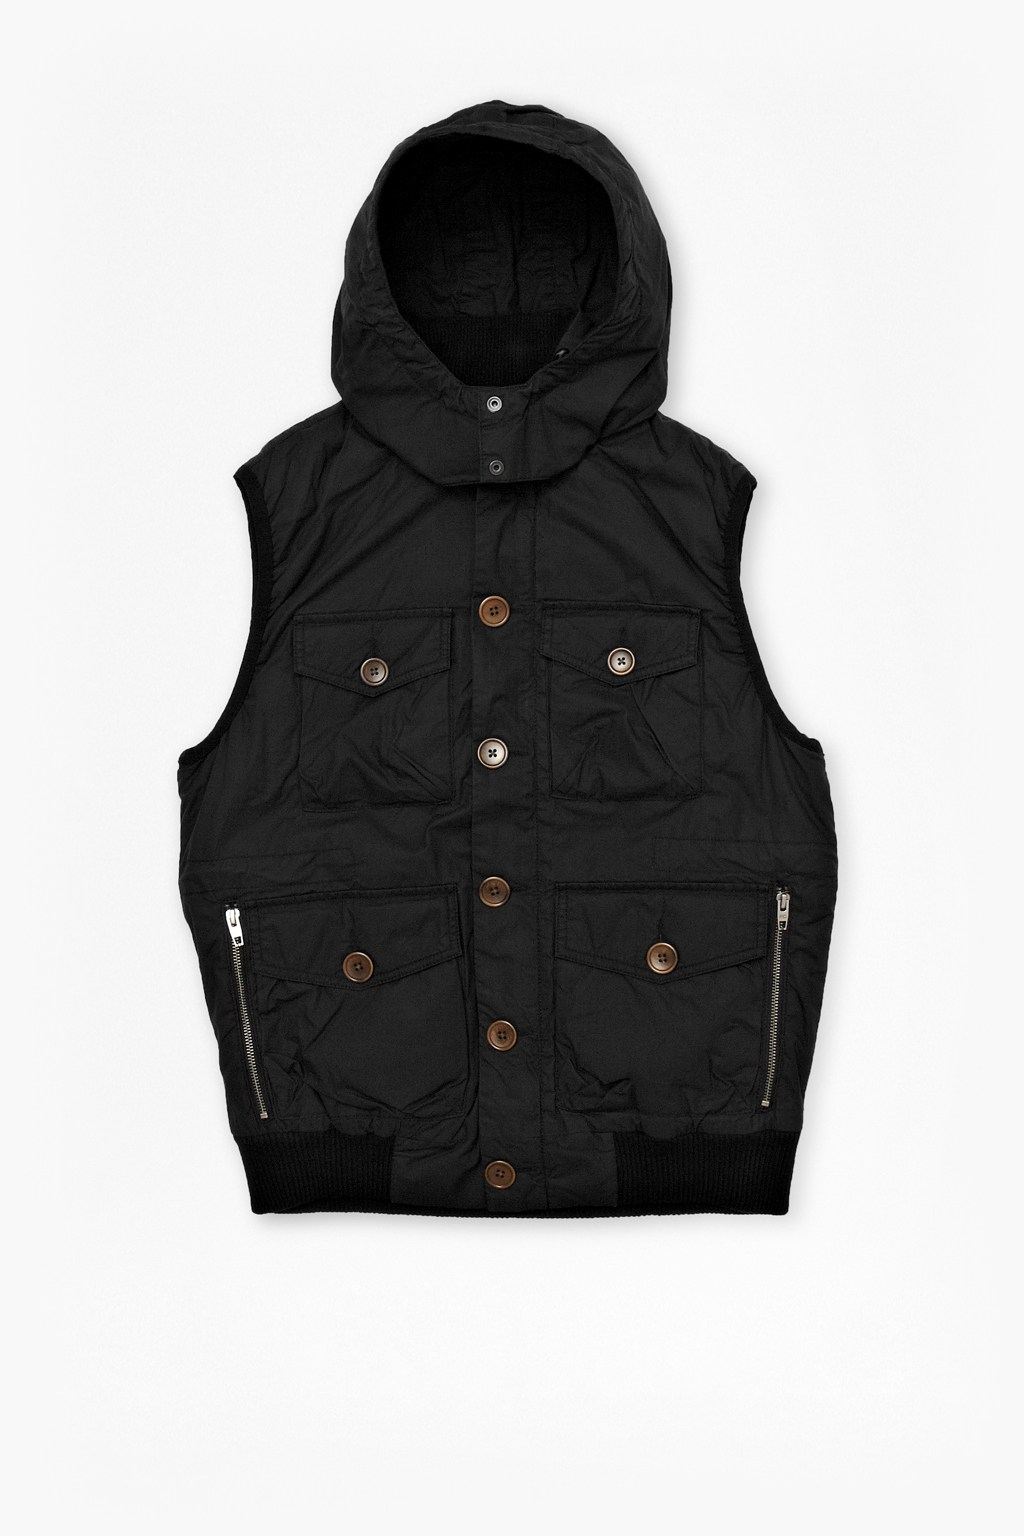 Find mens cotton gilet at ShopStyle. Shop the latest collection of mens cotton gilet from the most popular stores - all in one place.